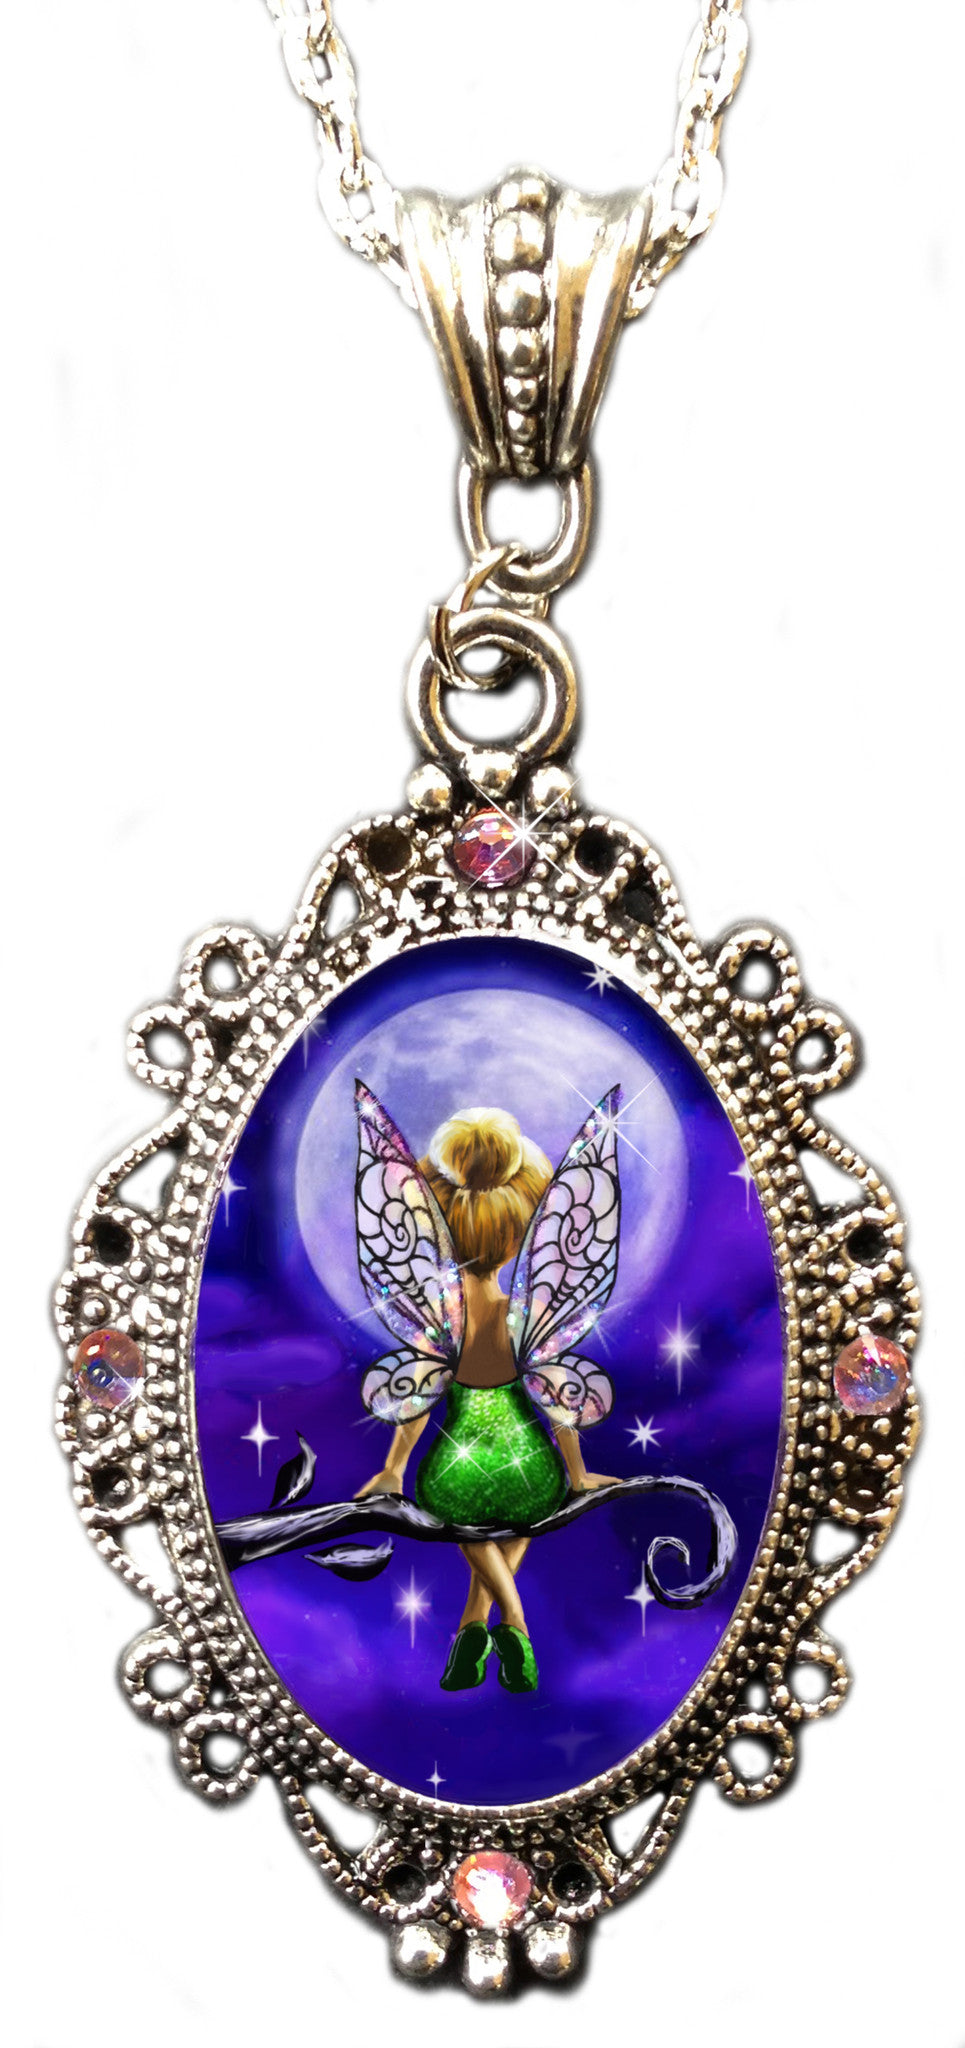 silver inch glamour fairy product watches collection carolina overstock pendant brown necklace free peace today chain box jewelry on amy sterling shipping